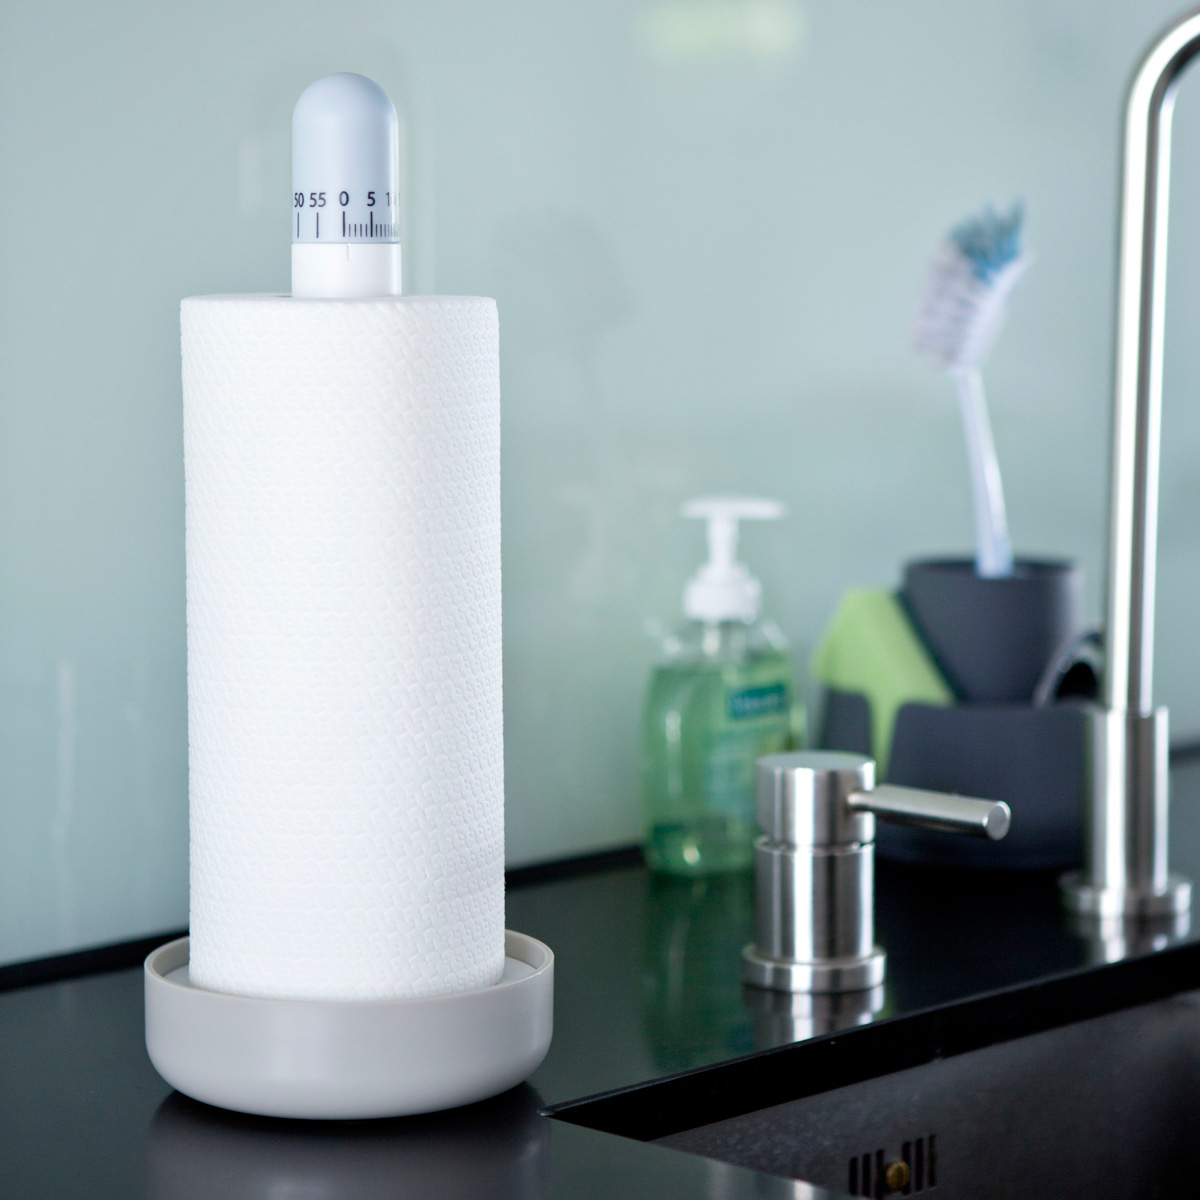 kitchen paper towel holder ideas and designs royal vkb timer the green head